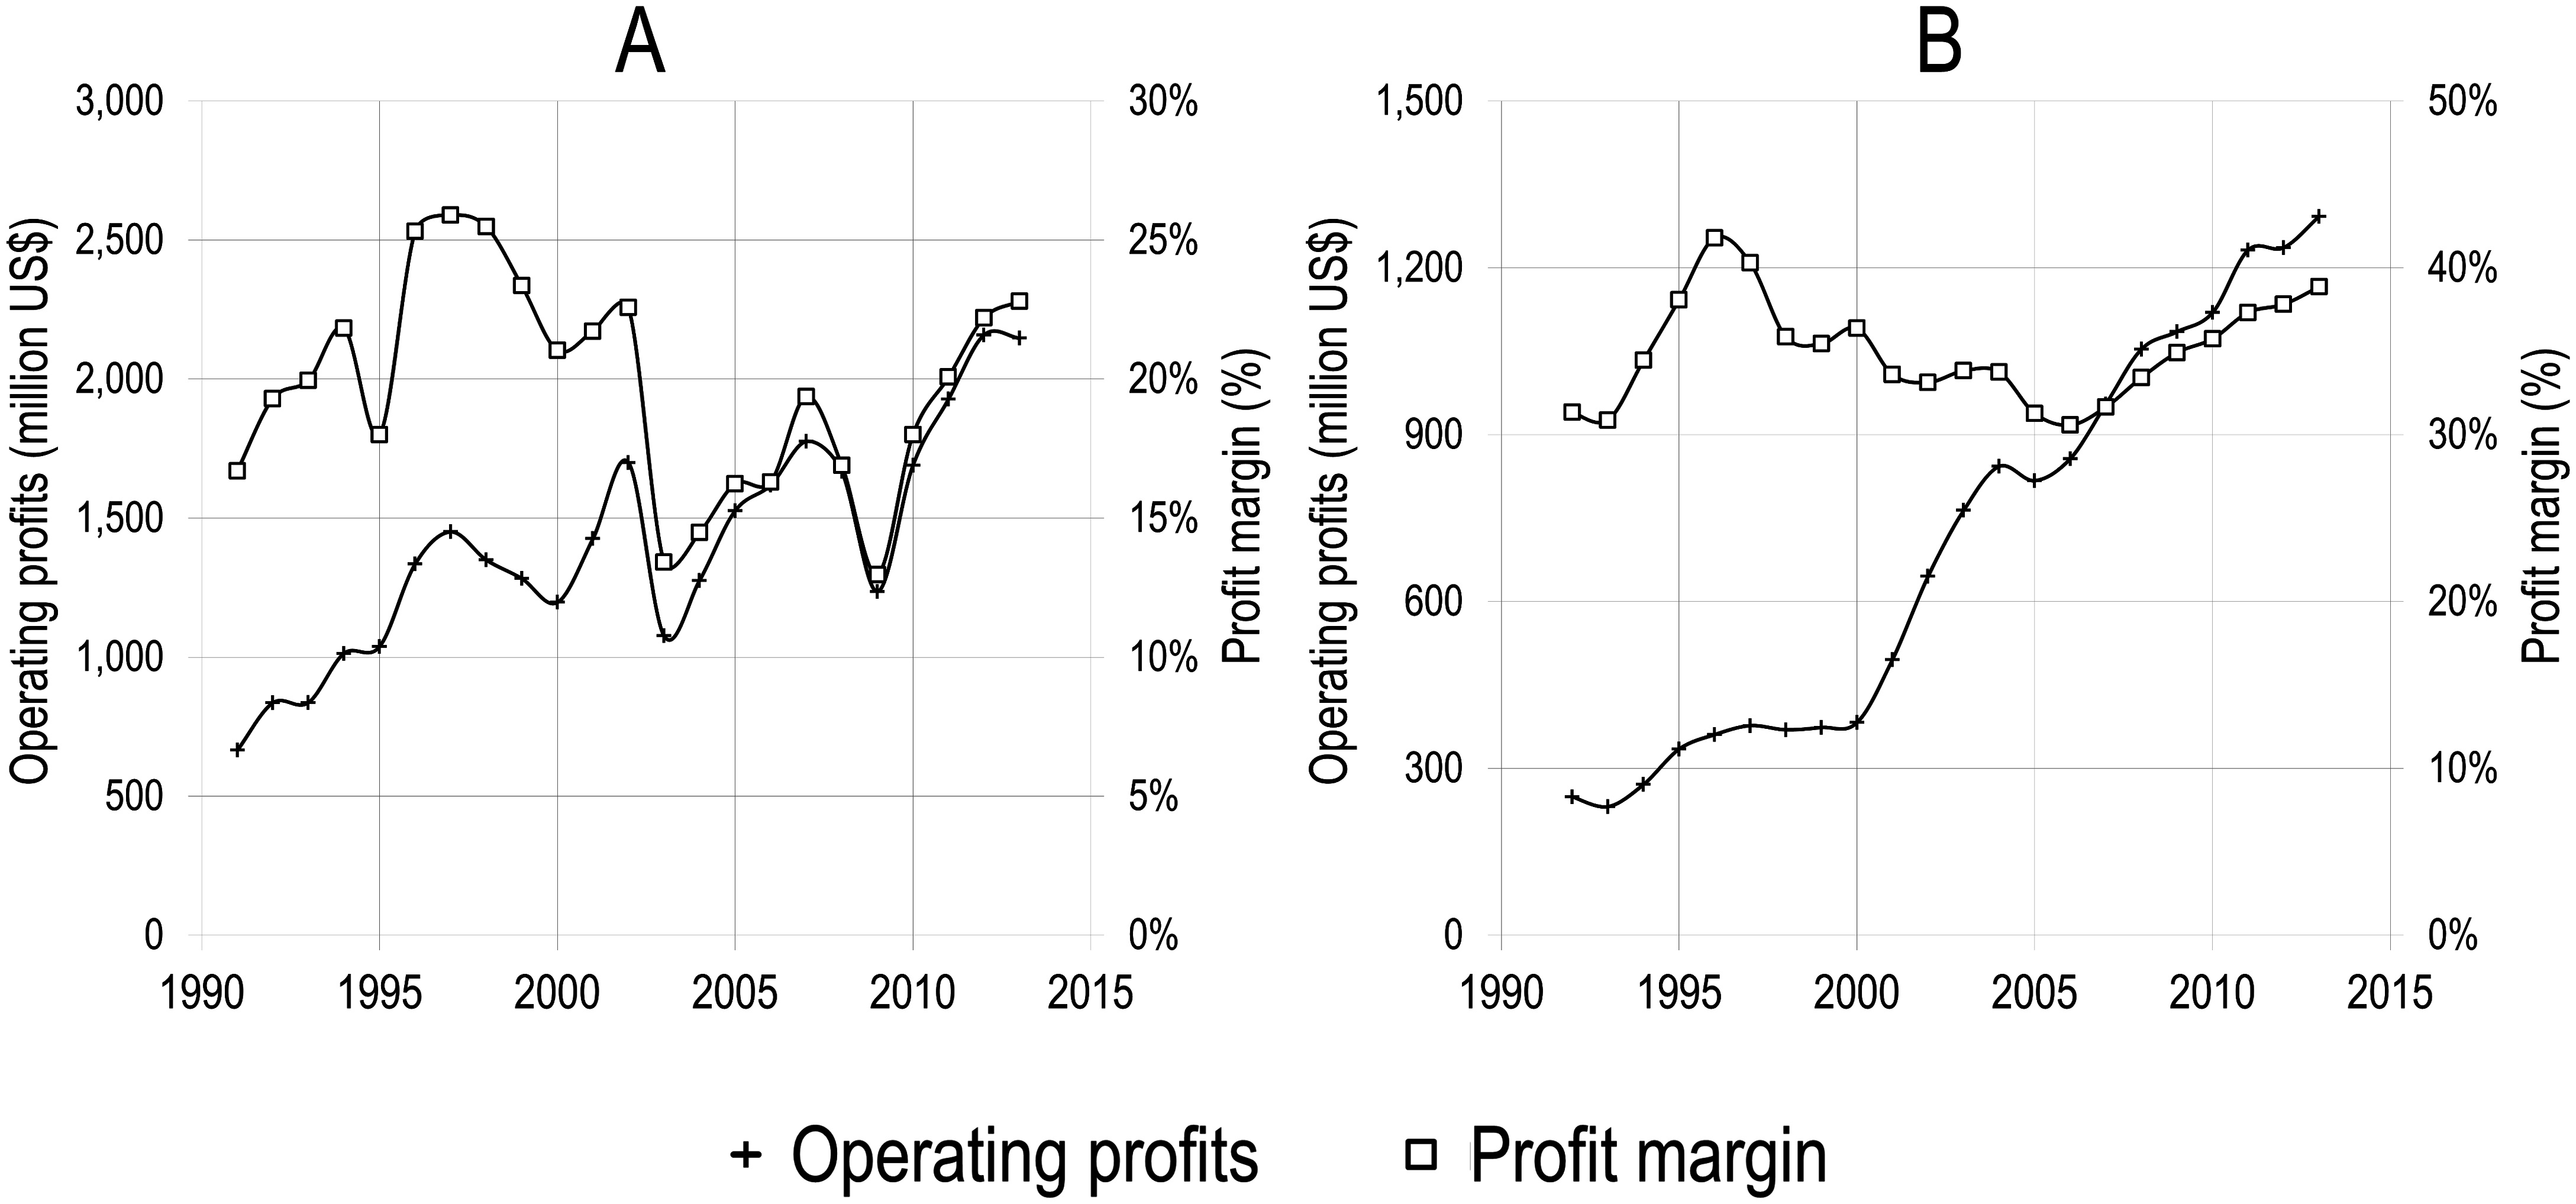 Reed-Elsevier profits. Left: entire business. Right: scientific, technical and medical division. Figure from [Larivière et al. 2015](https://doi.org/10.1371/journal.pone.0127502).